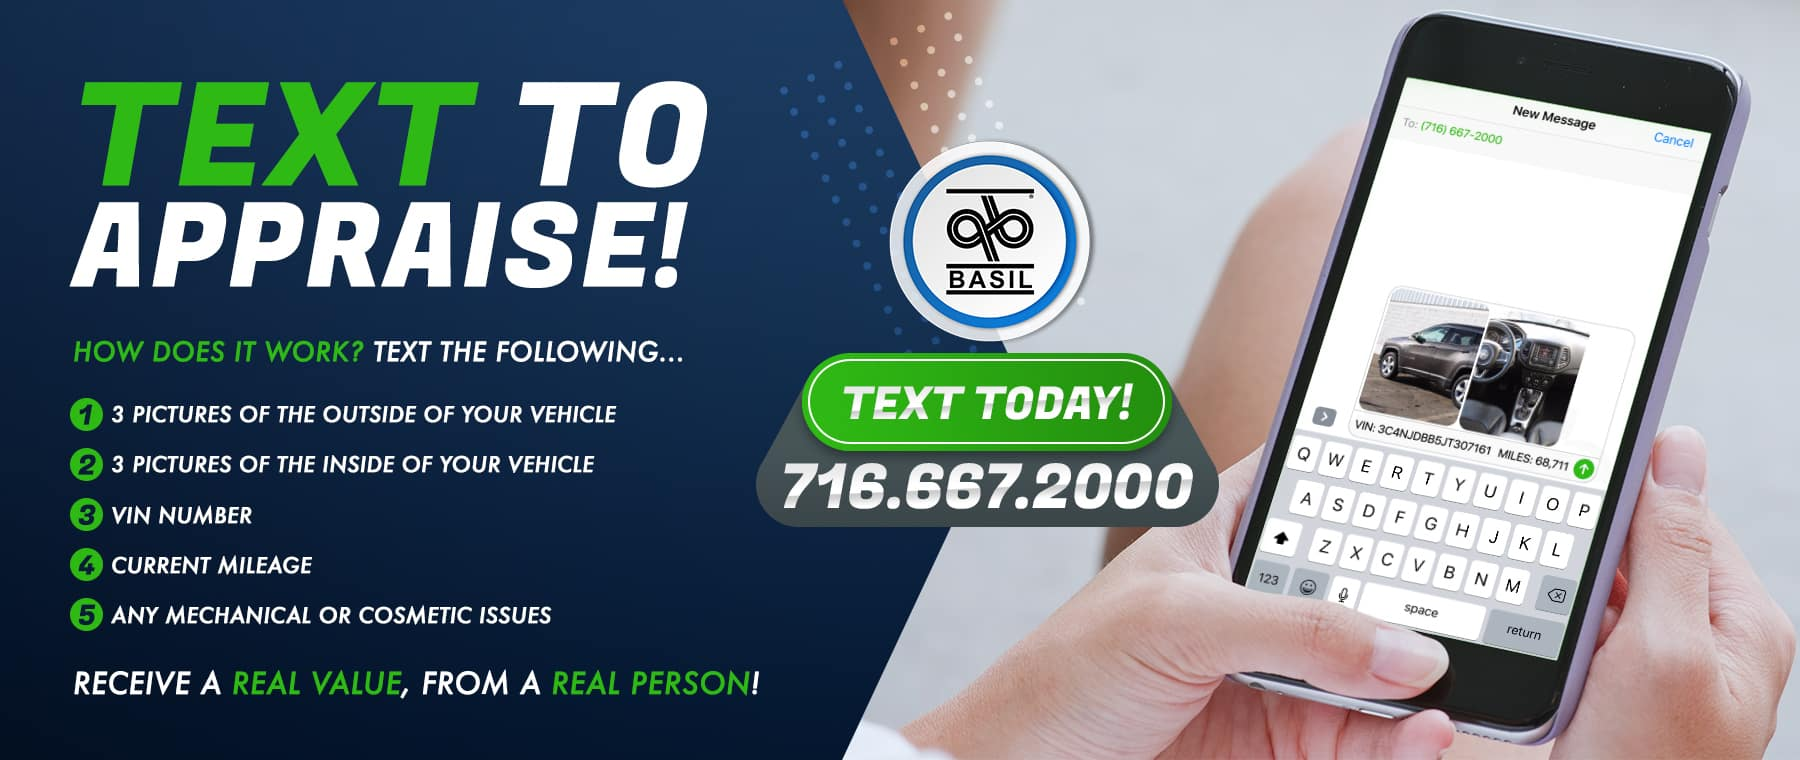 Text 716-667-200 for a vehicle appraisal.